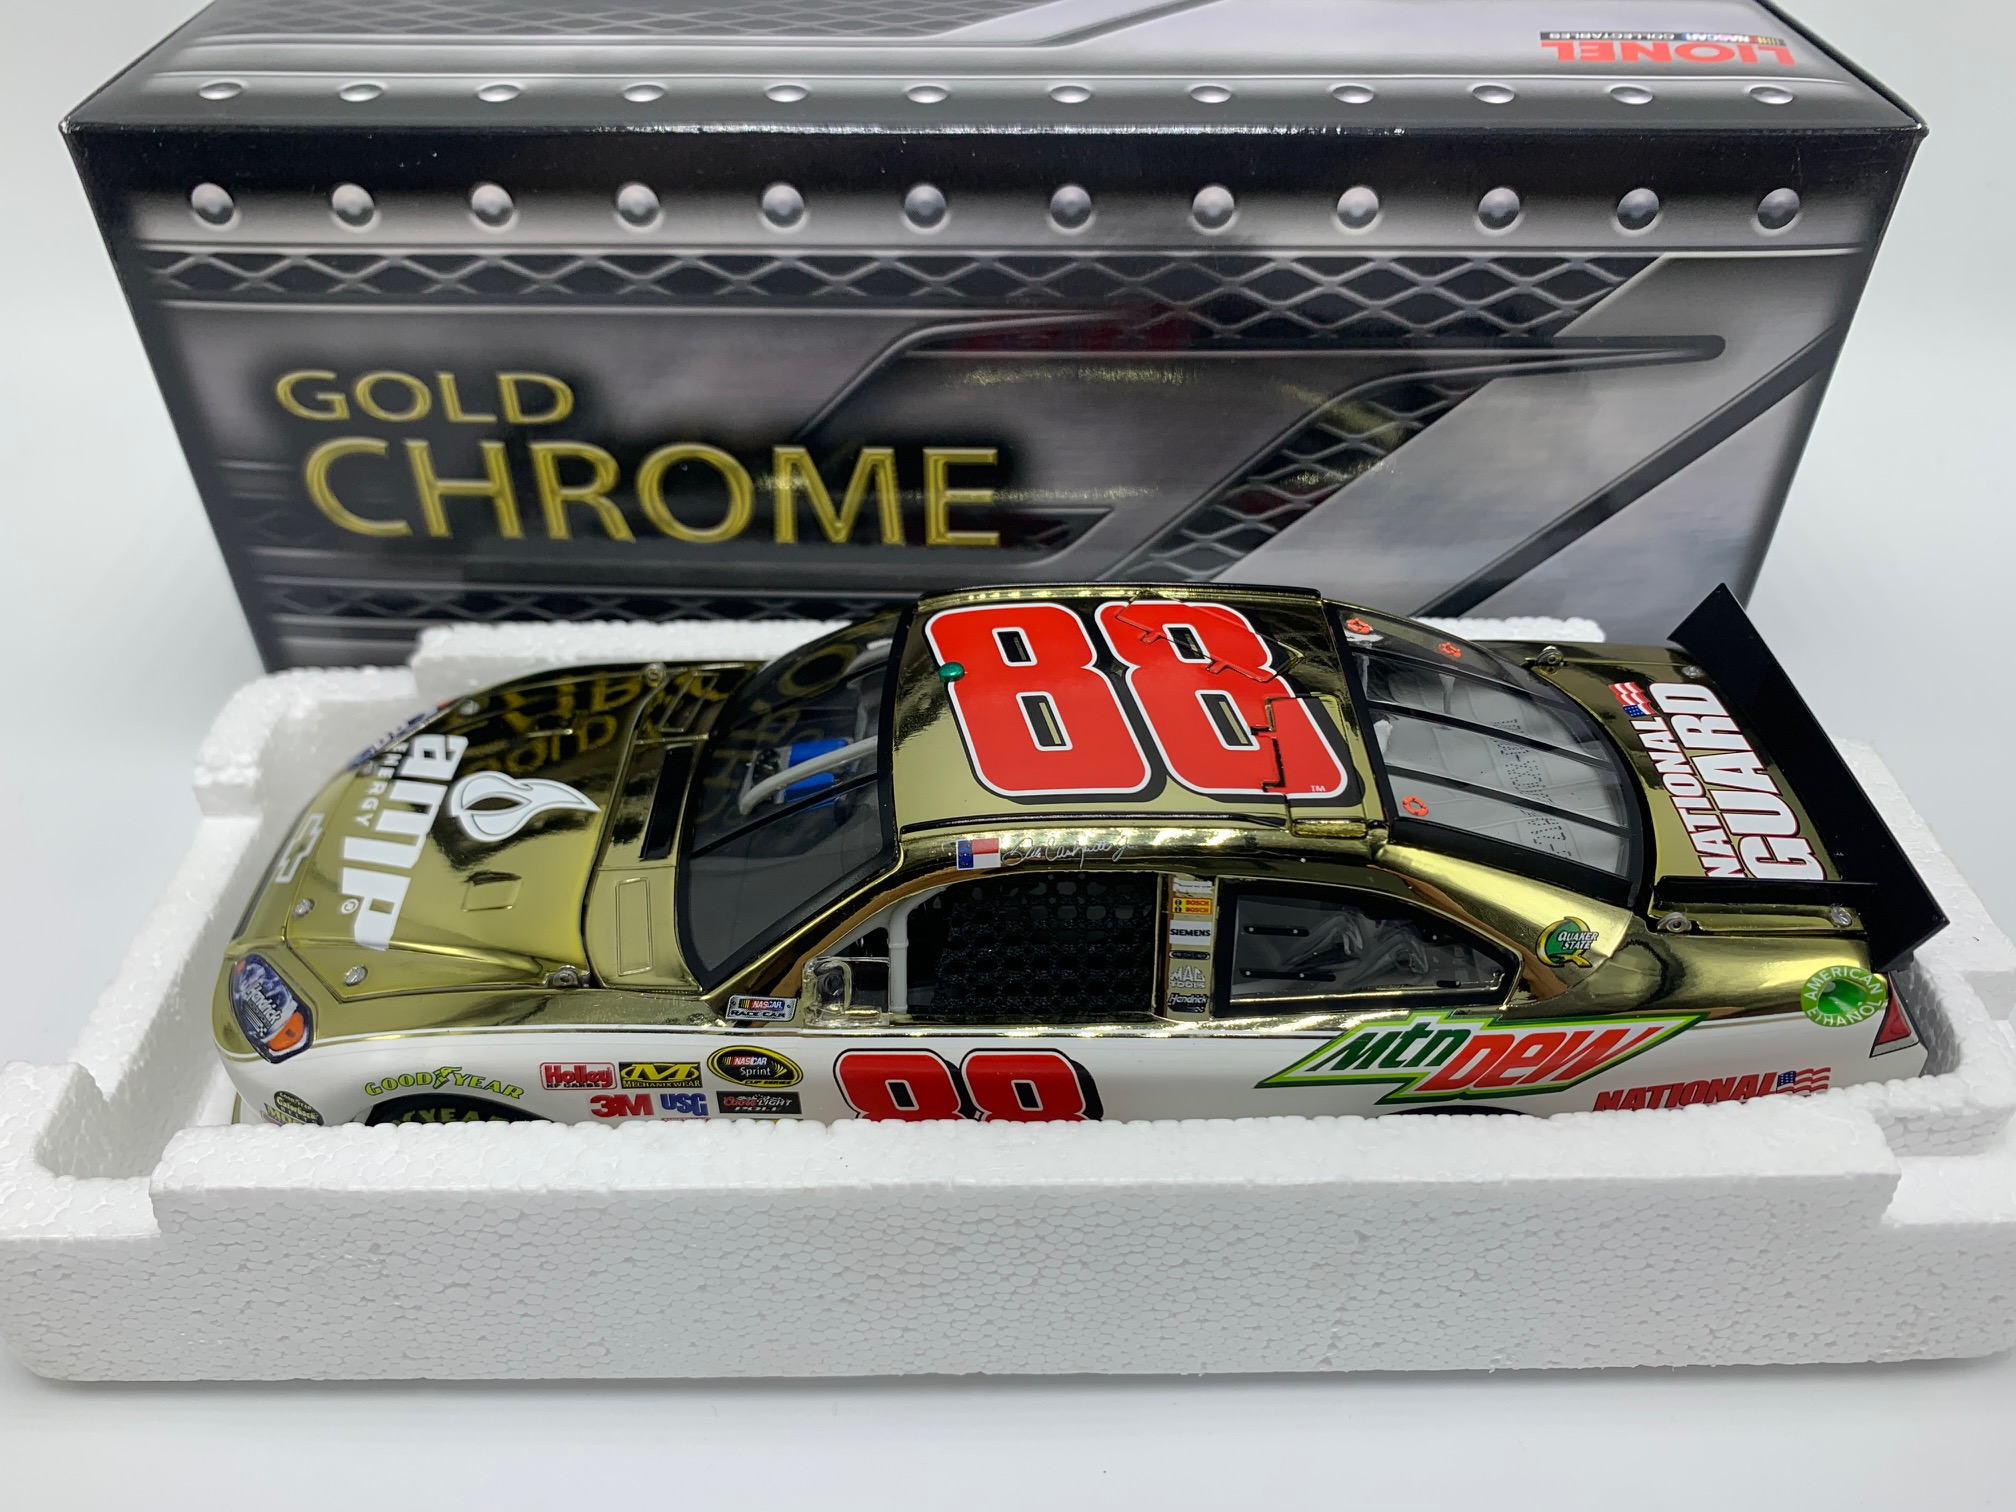 DALE EARNHARDT JR 2011 AMP ENERGY/NATIONAL GUARD 1:24 GOLD CHROME ARC DIECAST - DIN # 1